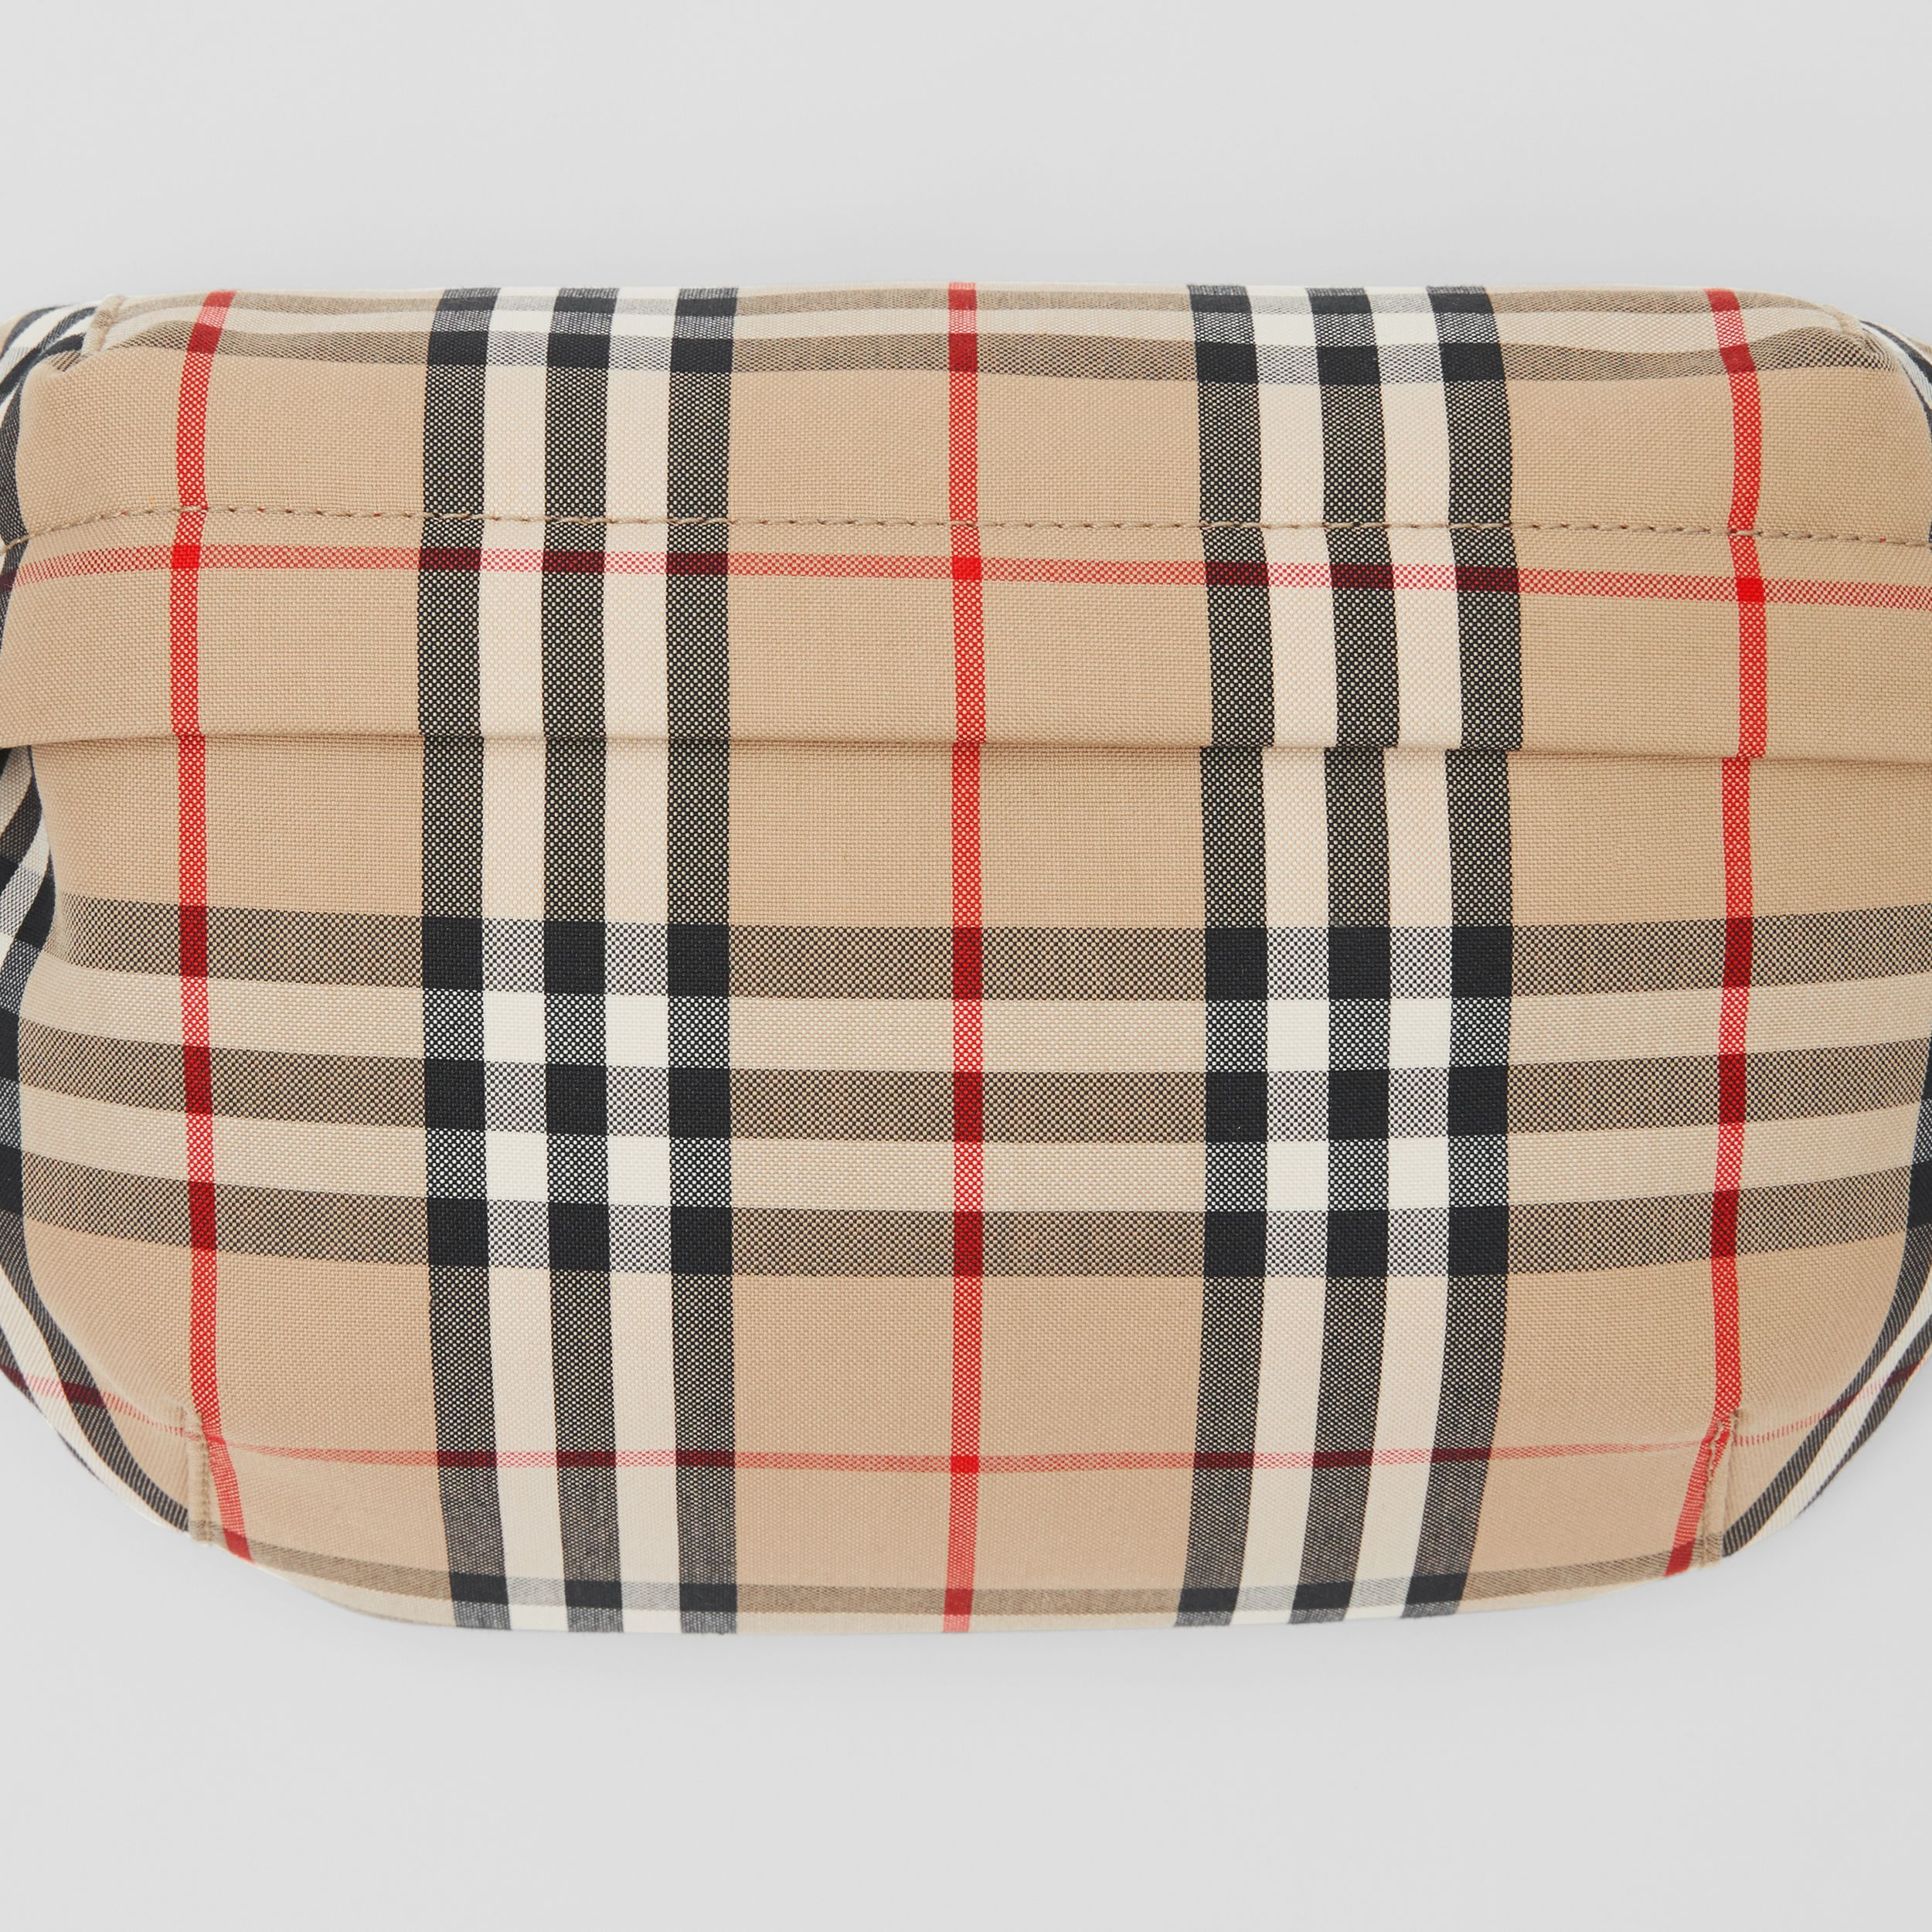 Medium Vintage Check Bonded Cotton Bum Bag in Archive Beige | Burberry Hong Kong S.A.R. - 2